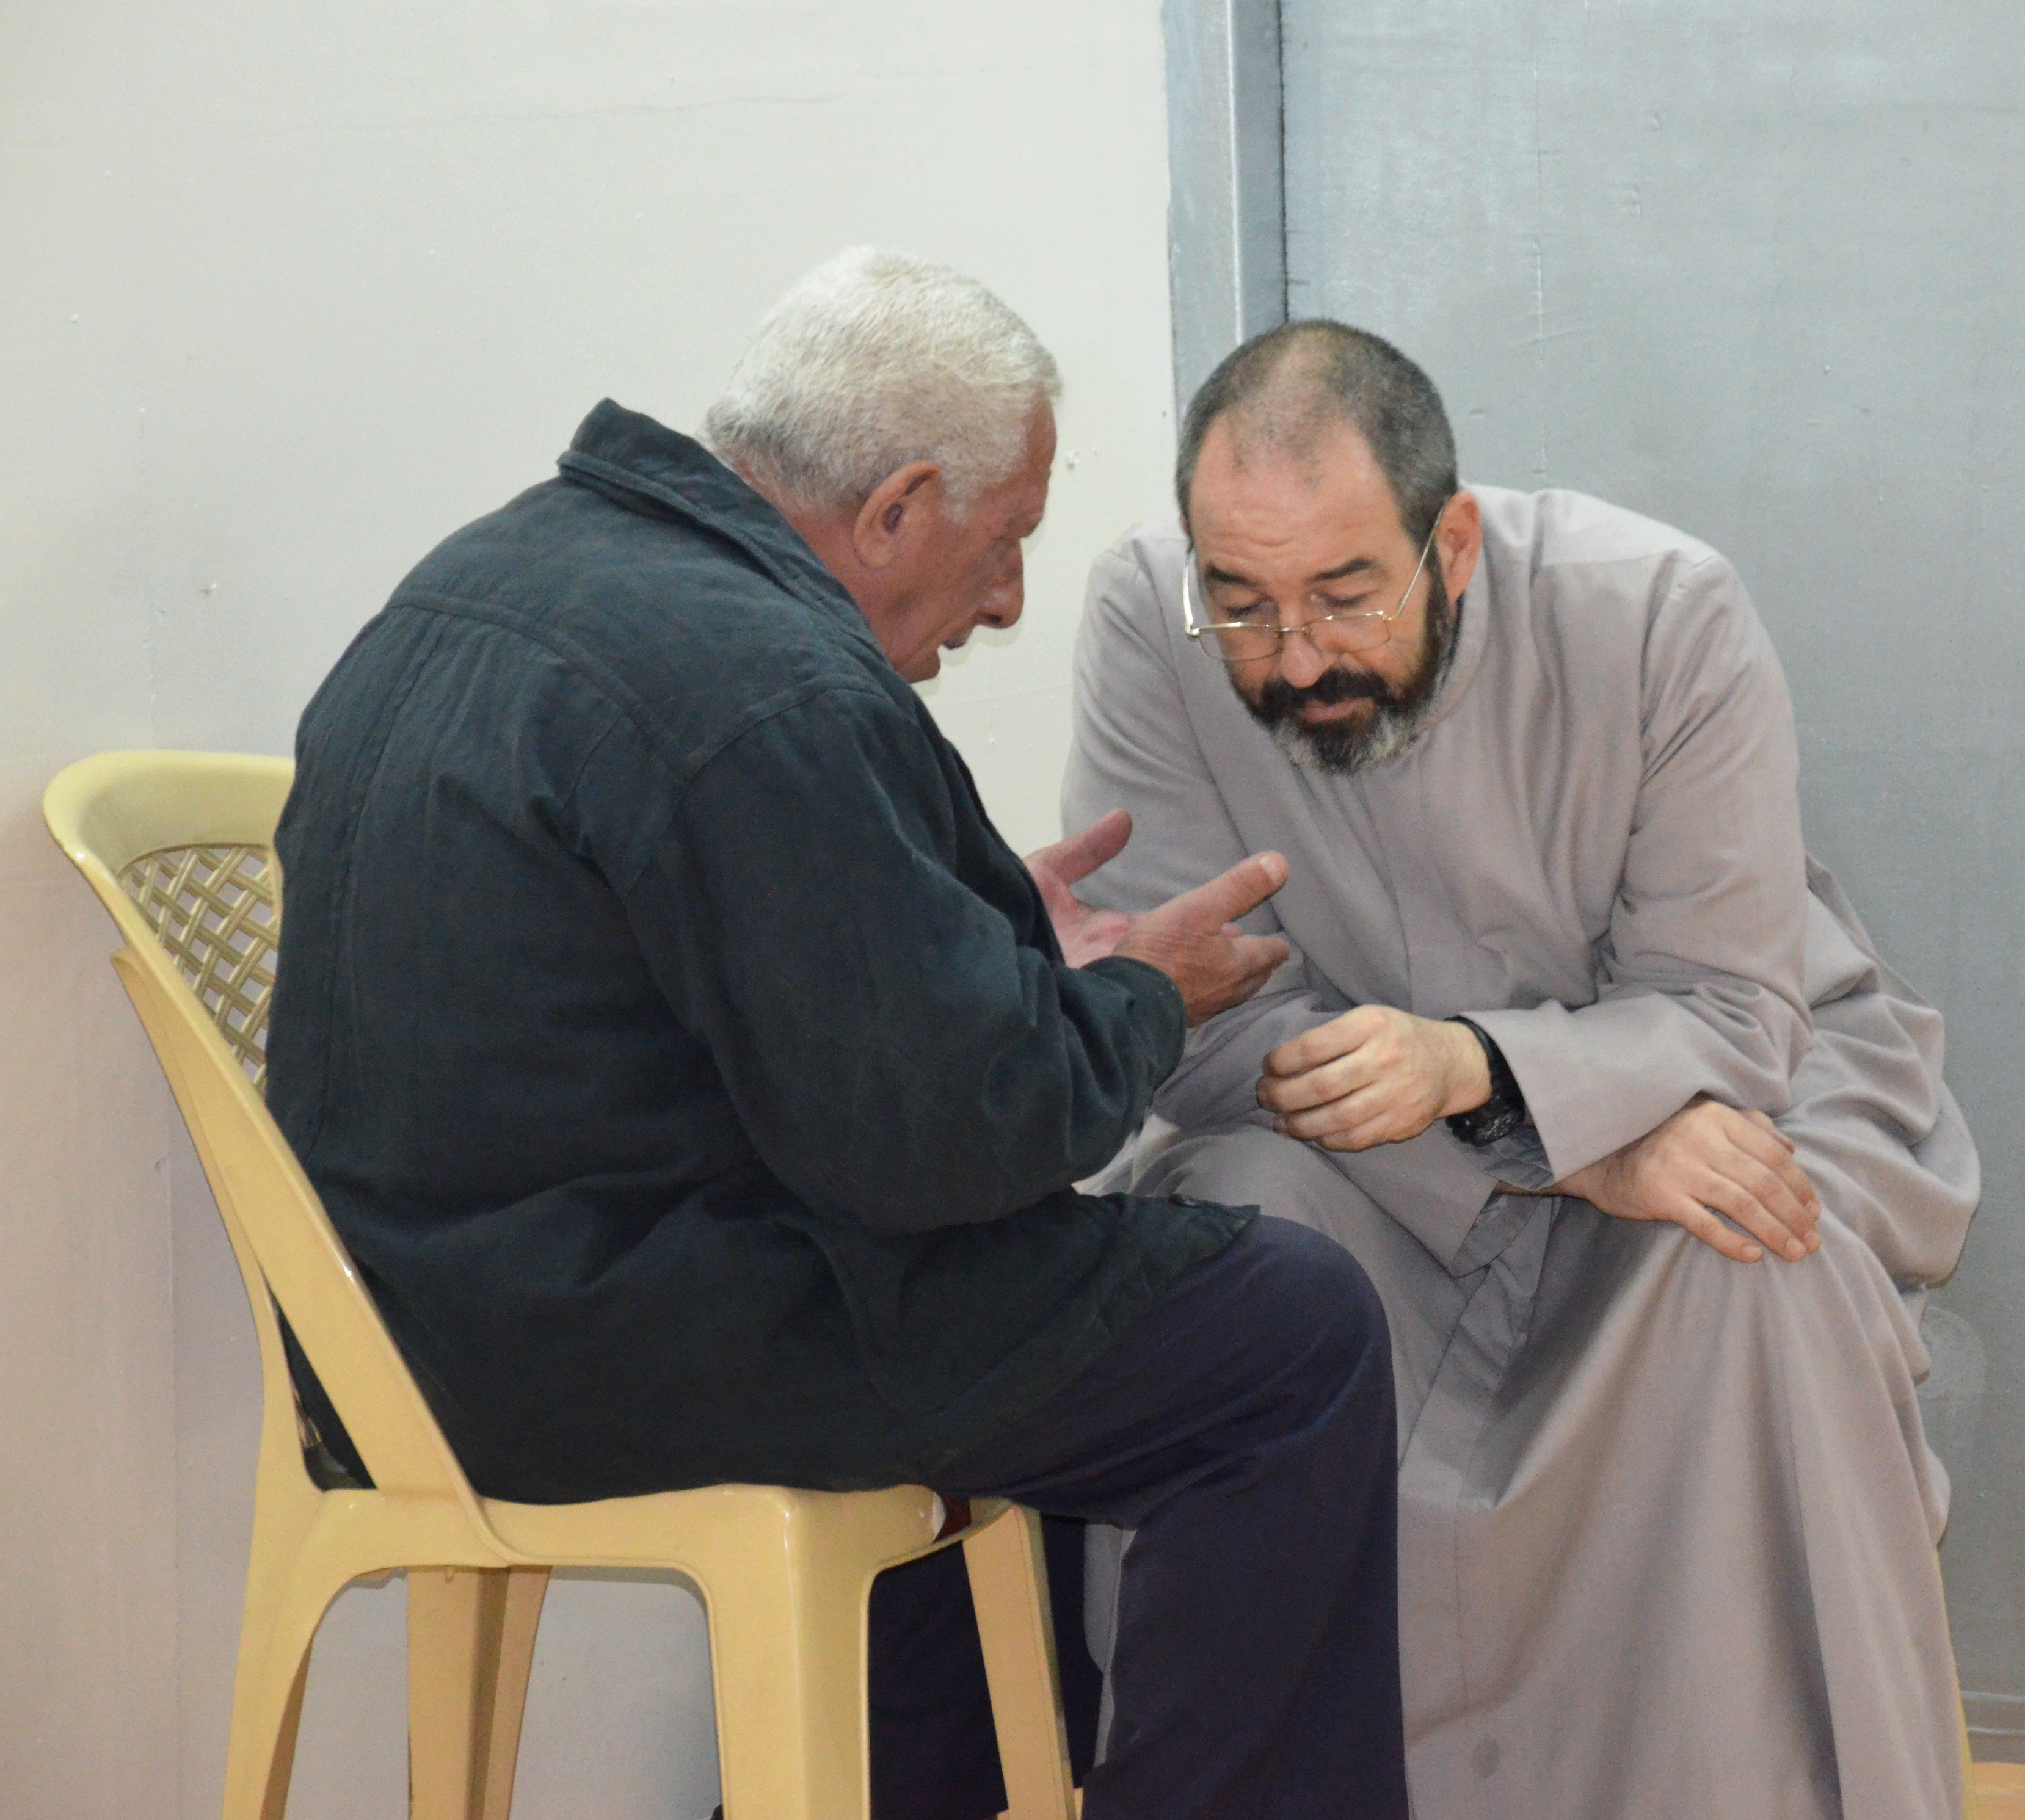 Father Luis Montes hears confession in the back of the new chapel in 'Camp Virgin Mary'